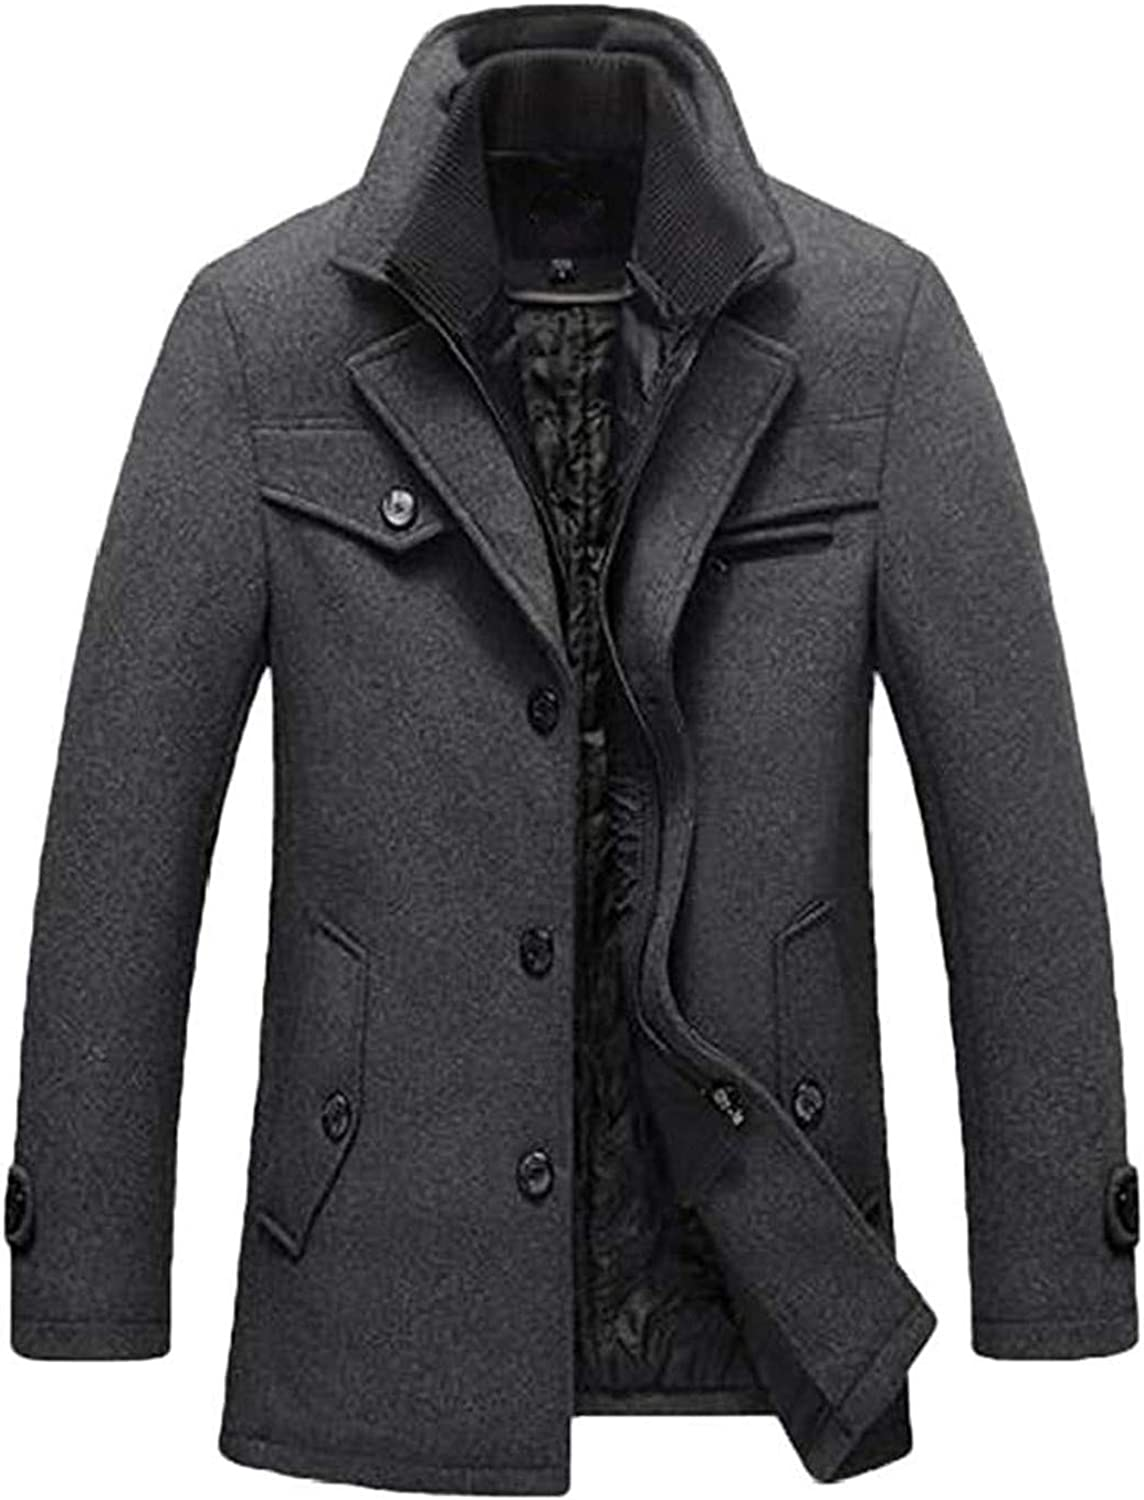 AiMei Men Single Breasted Mid Length Stand Collar Casual Trench Coat Jacket Overcoat 2